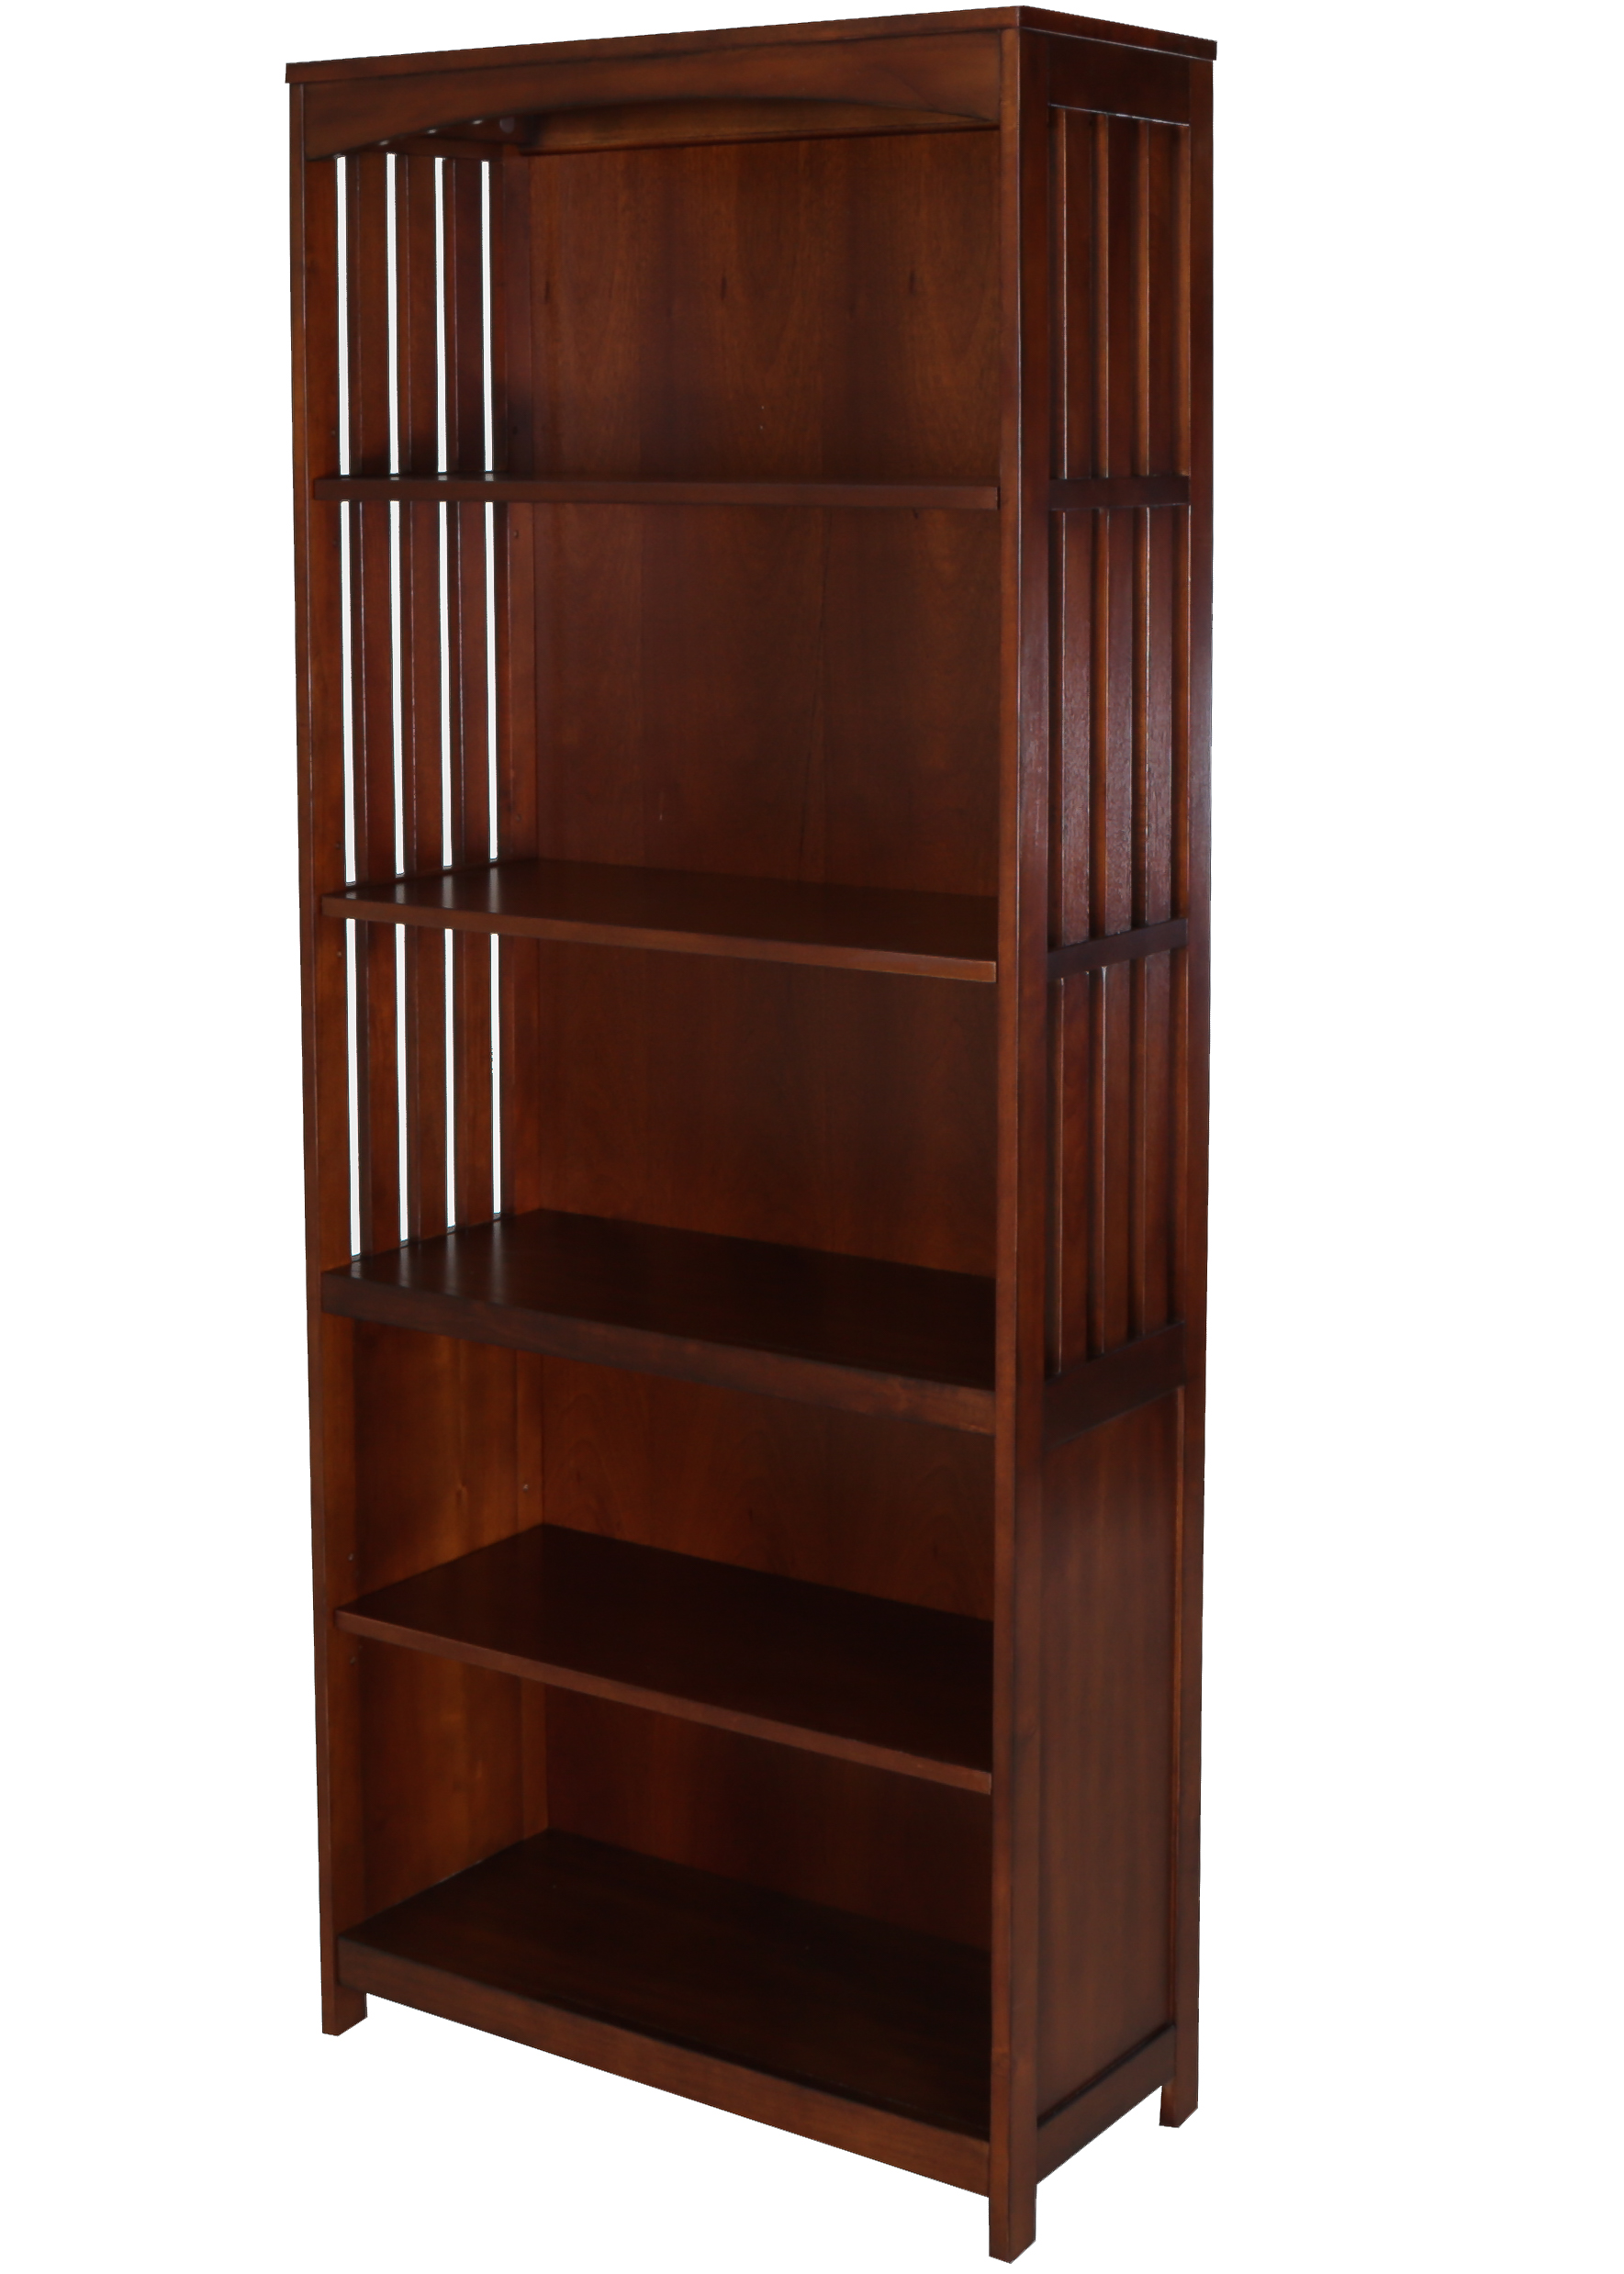 Liberty Furniture Hampton Bay  Open Bookcase                                - Item Number: 718-HO201